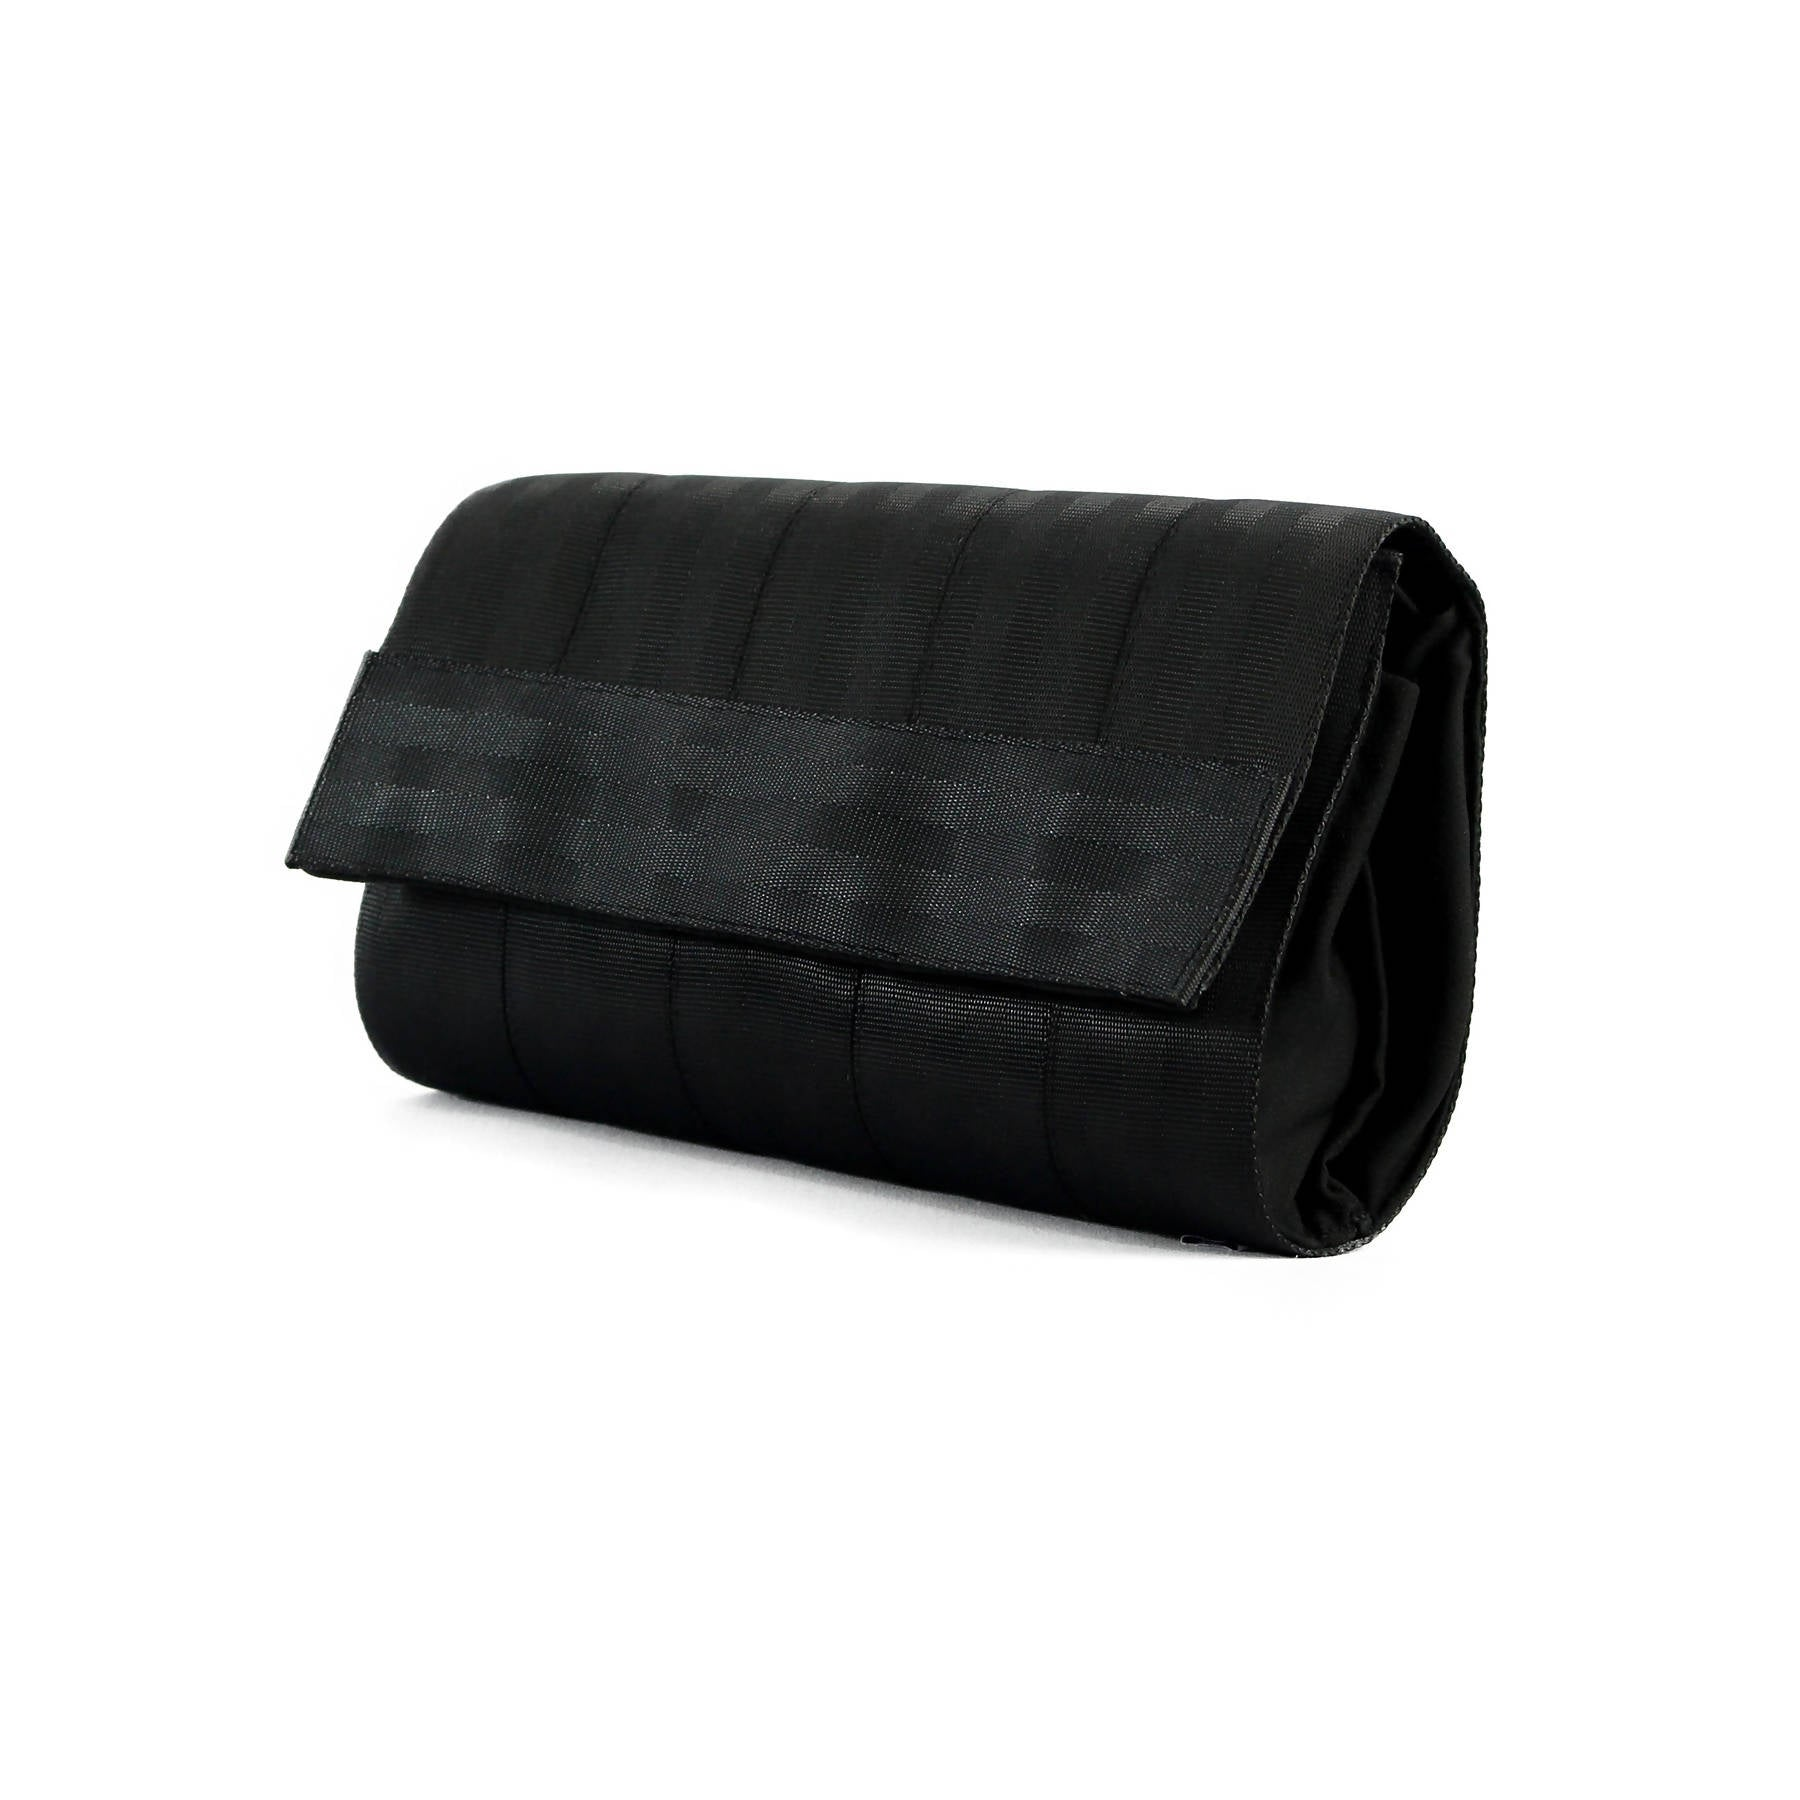 Camelia II Clutch cum Sling Bag / Black